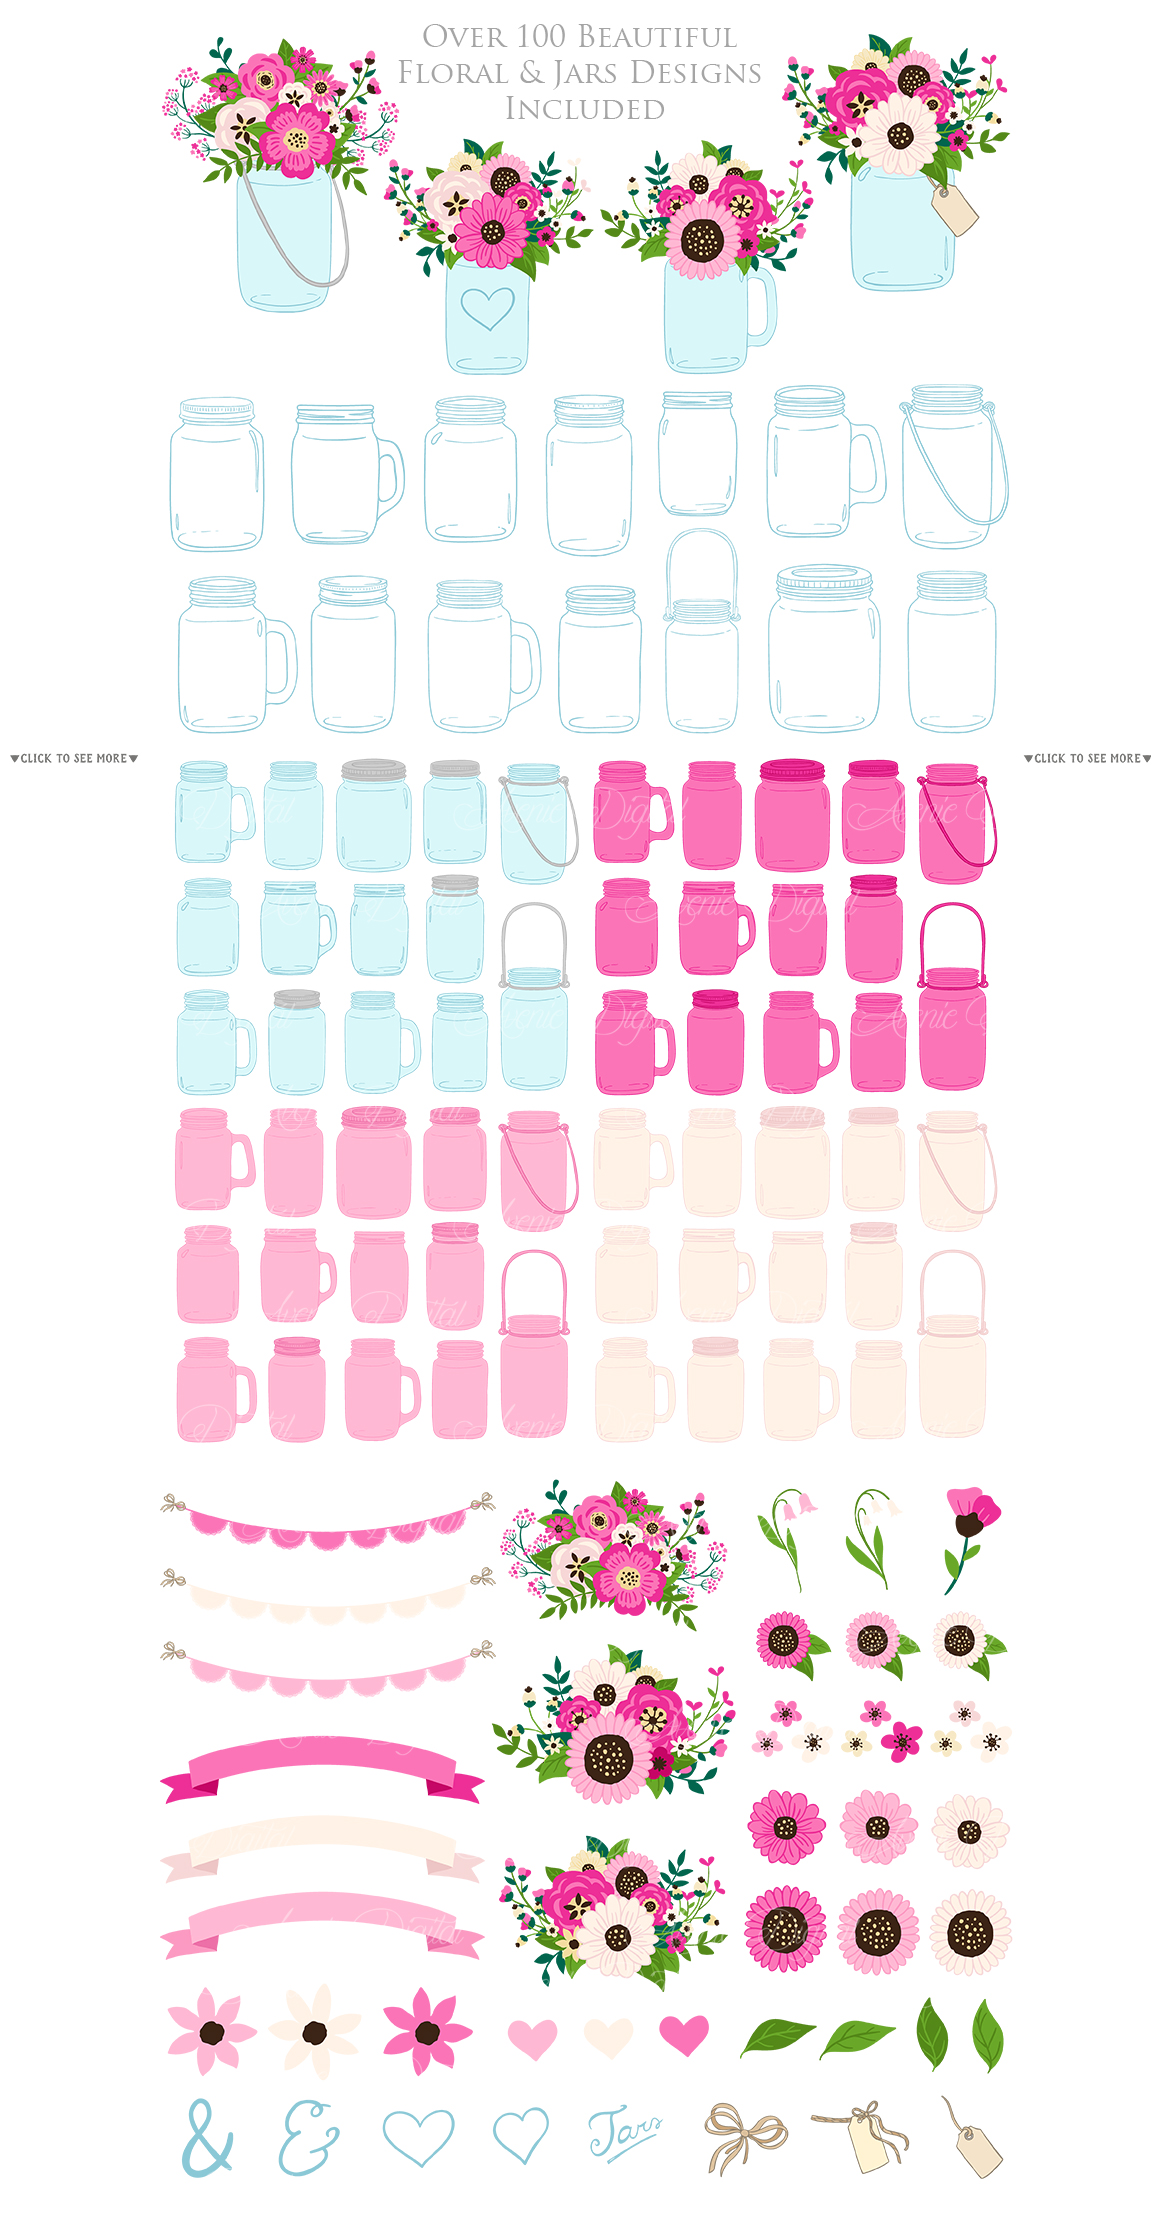 Hot Pink Mason Jar Floral Wedding Clipart example image 5